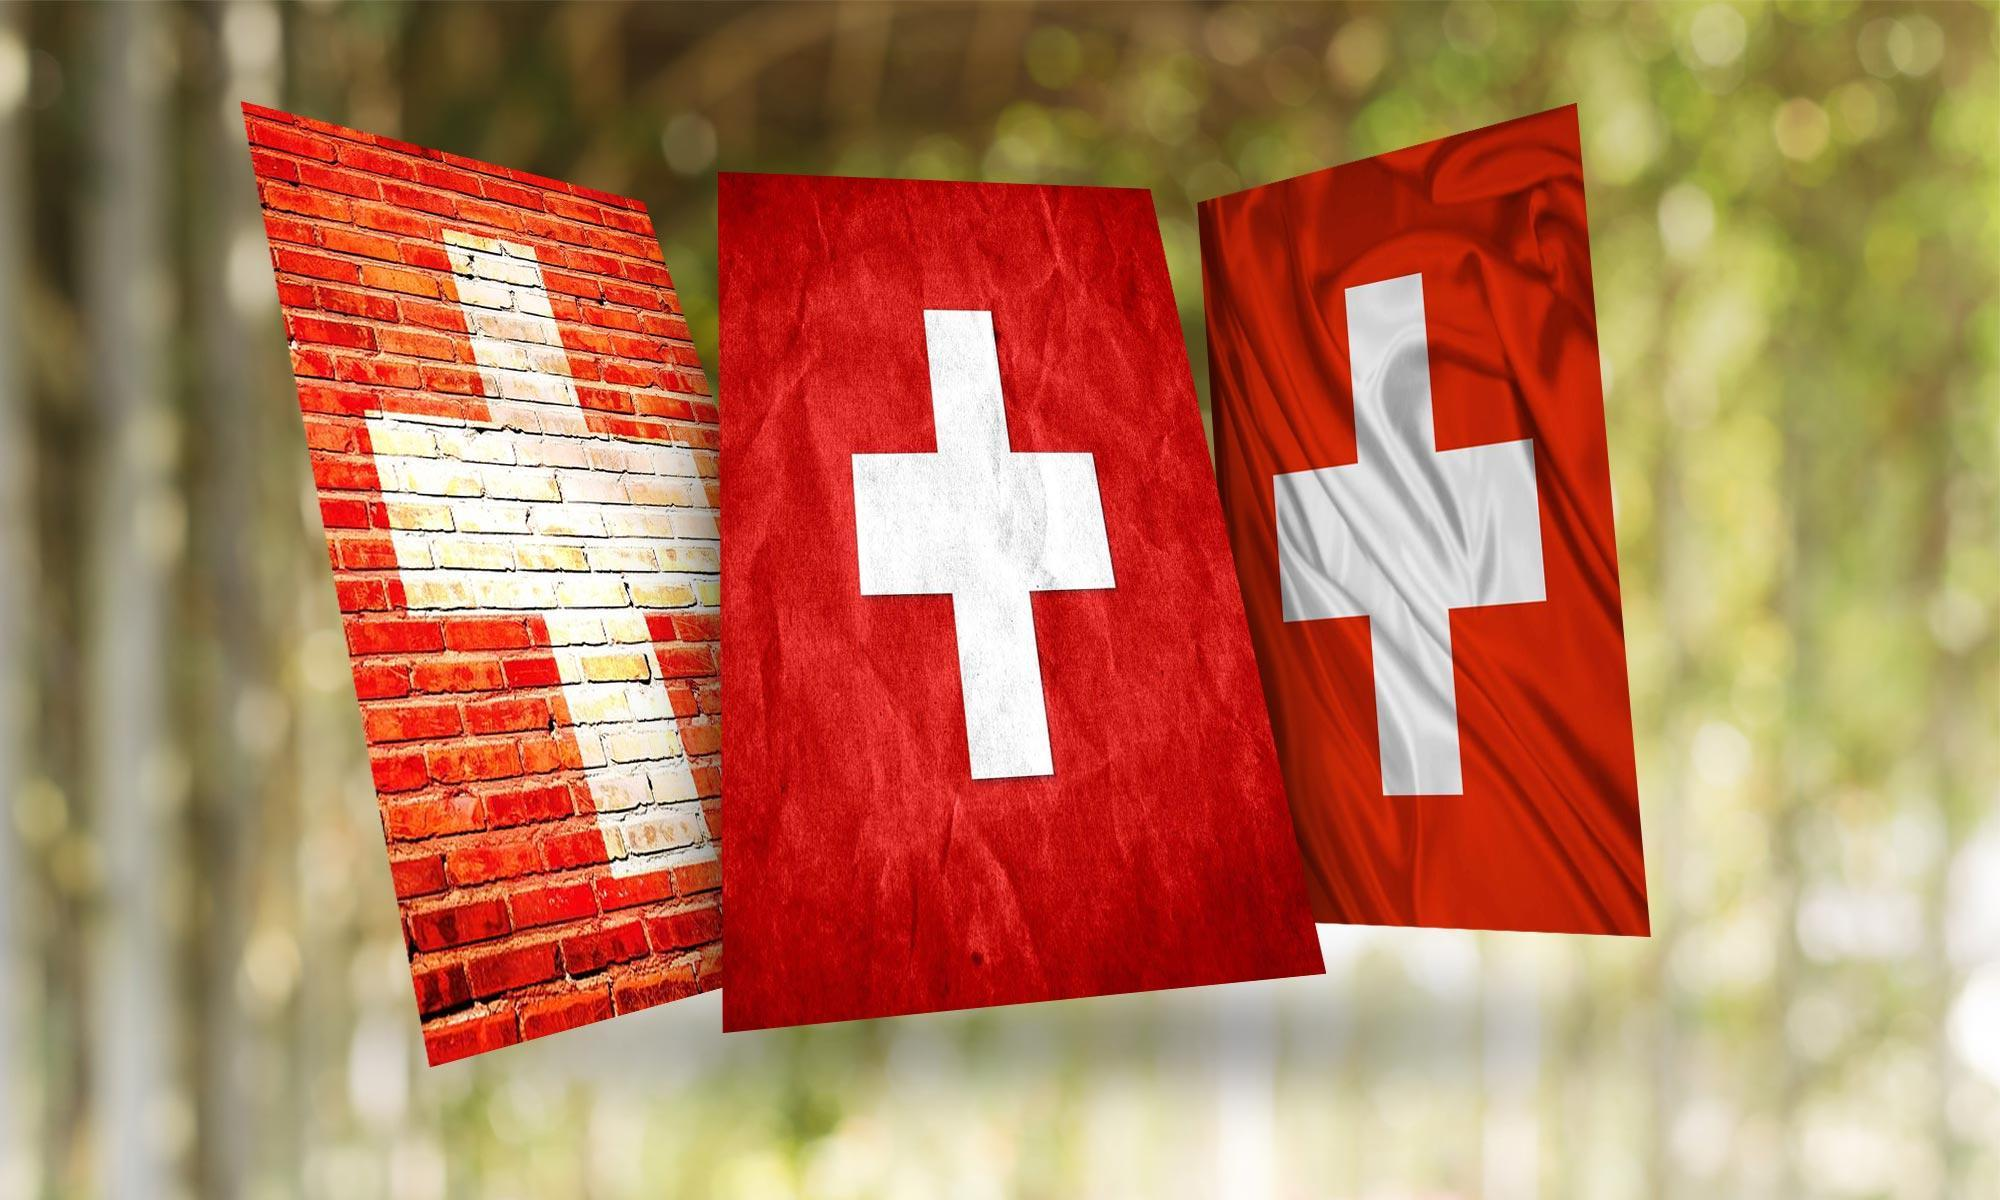 2000x1200 Switzerland Flag Wallpaper for Android - APK Download